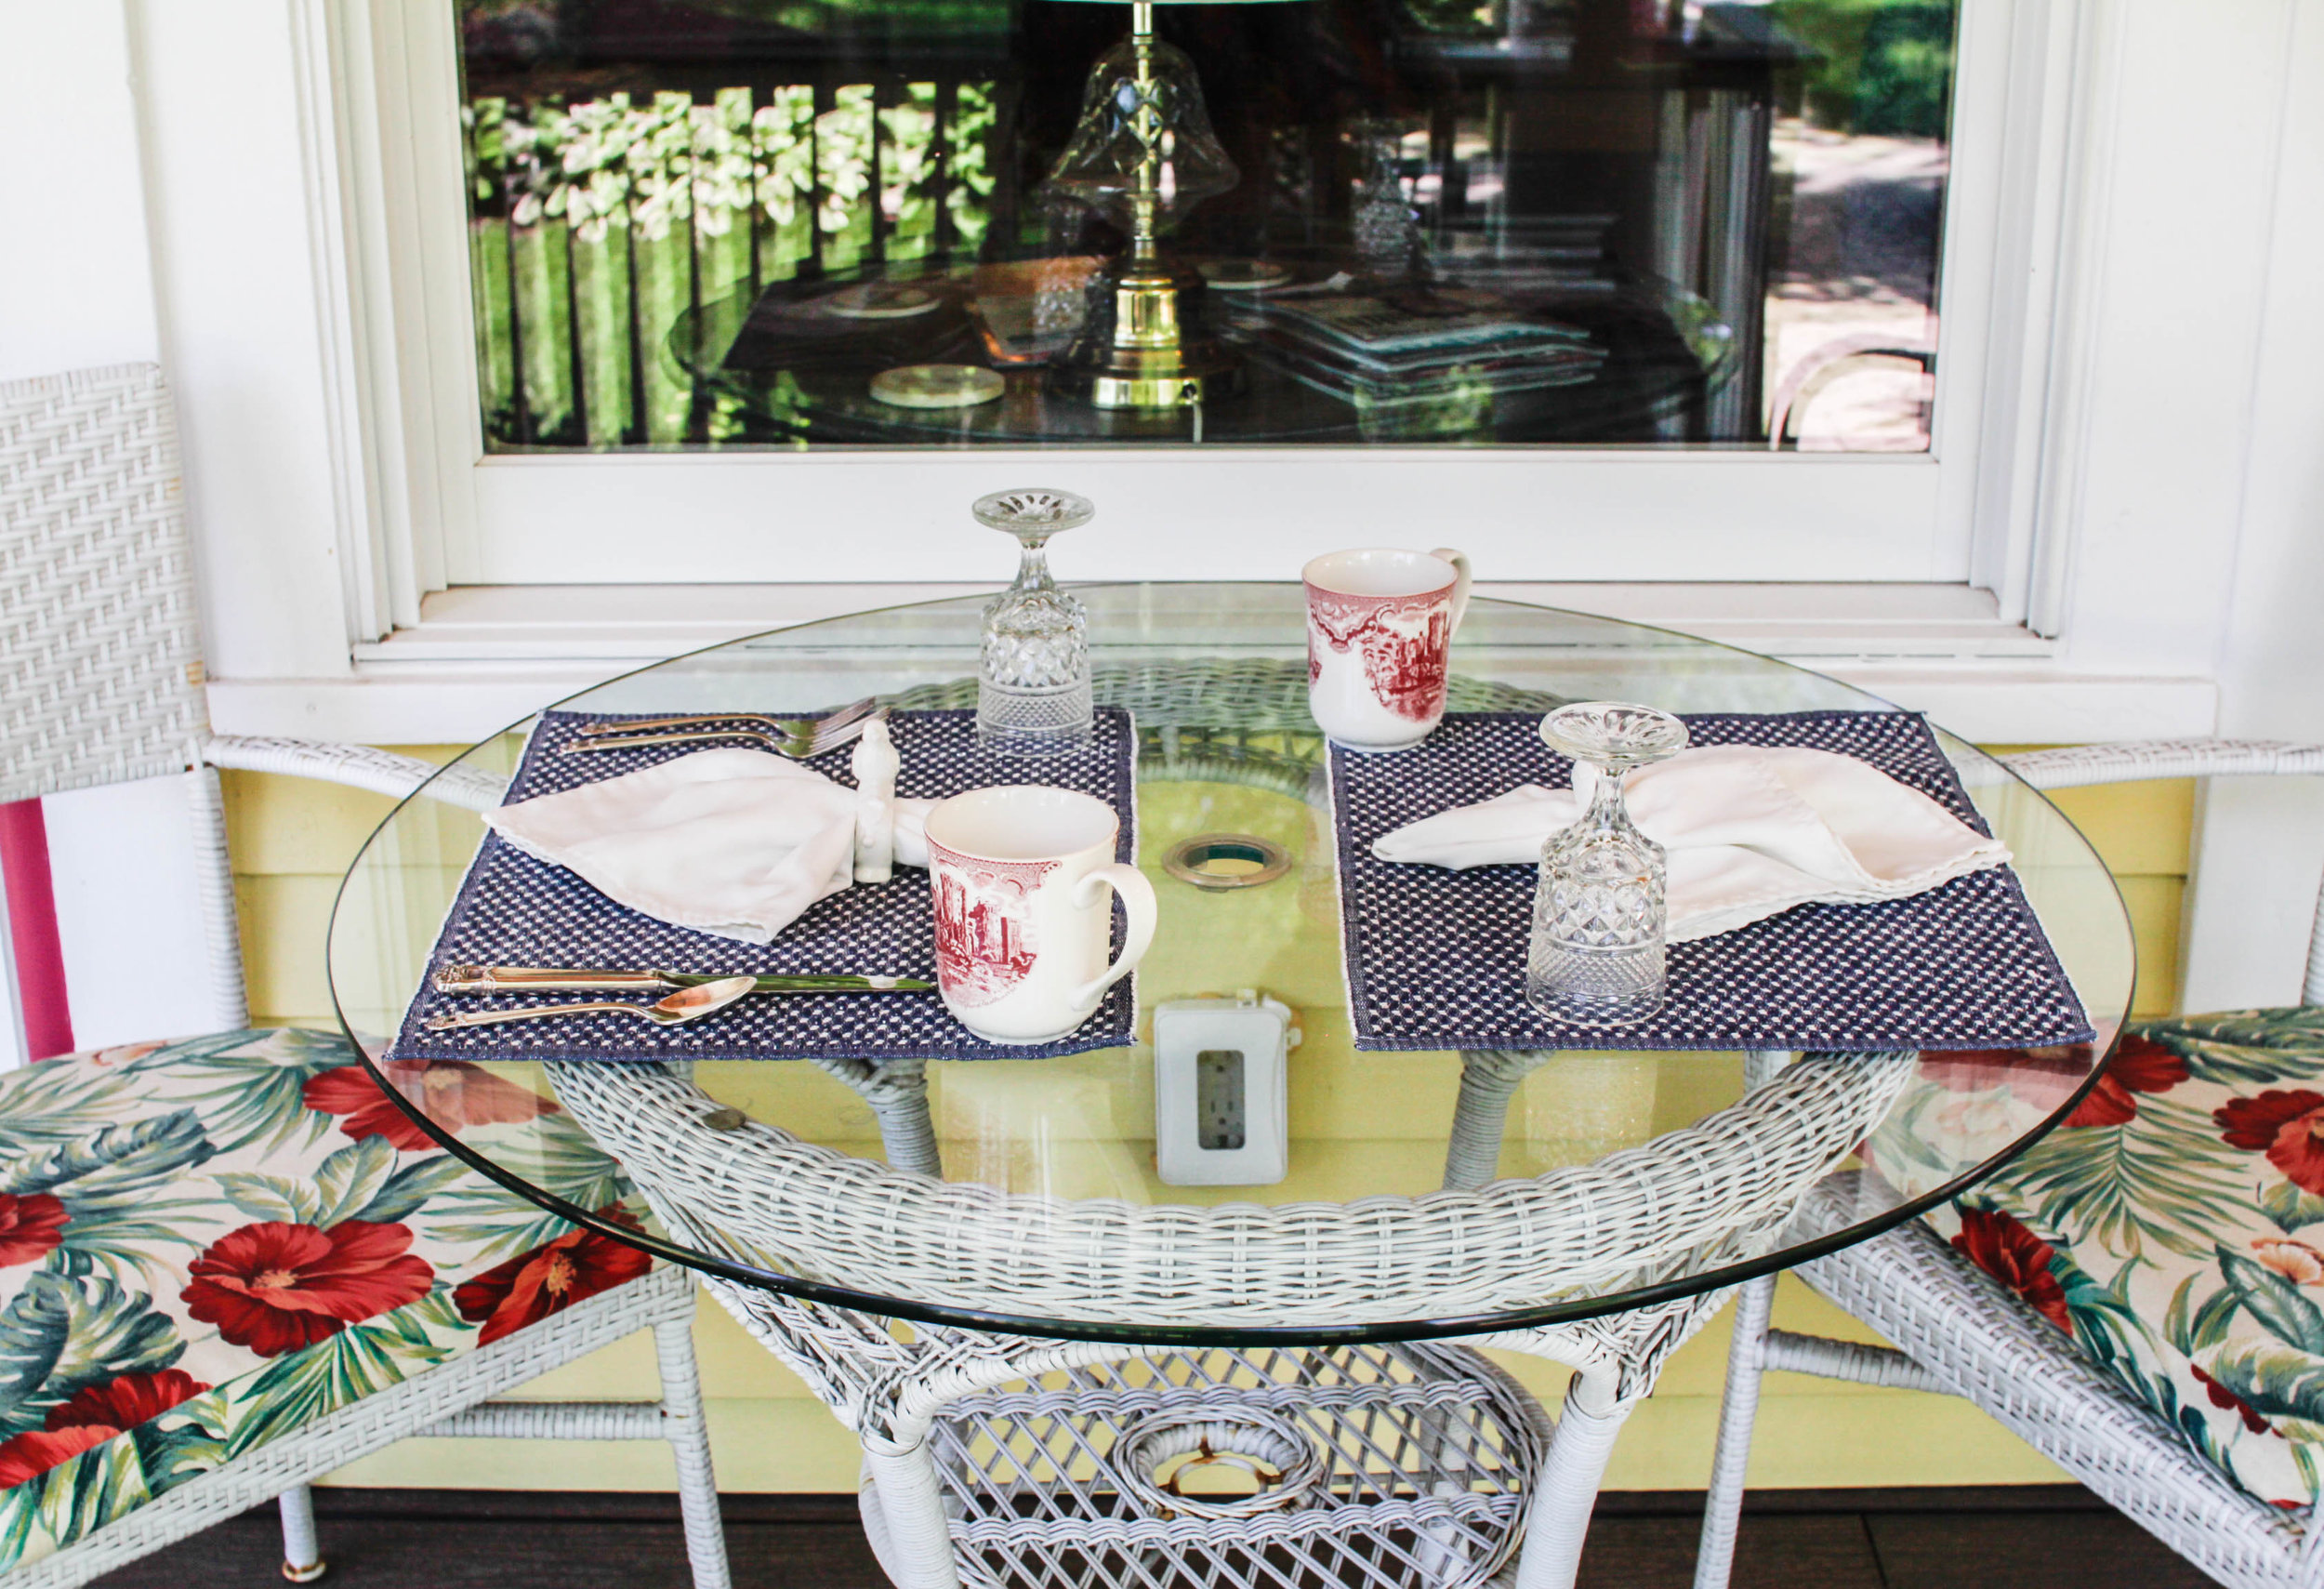 Victorian Outdoor Eating Area